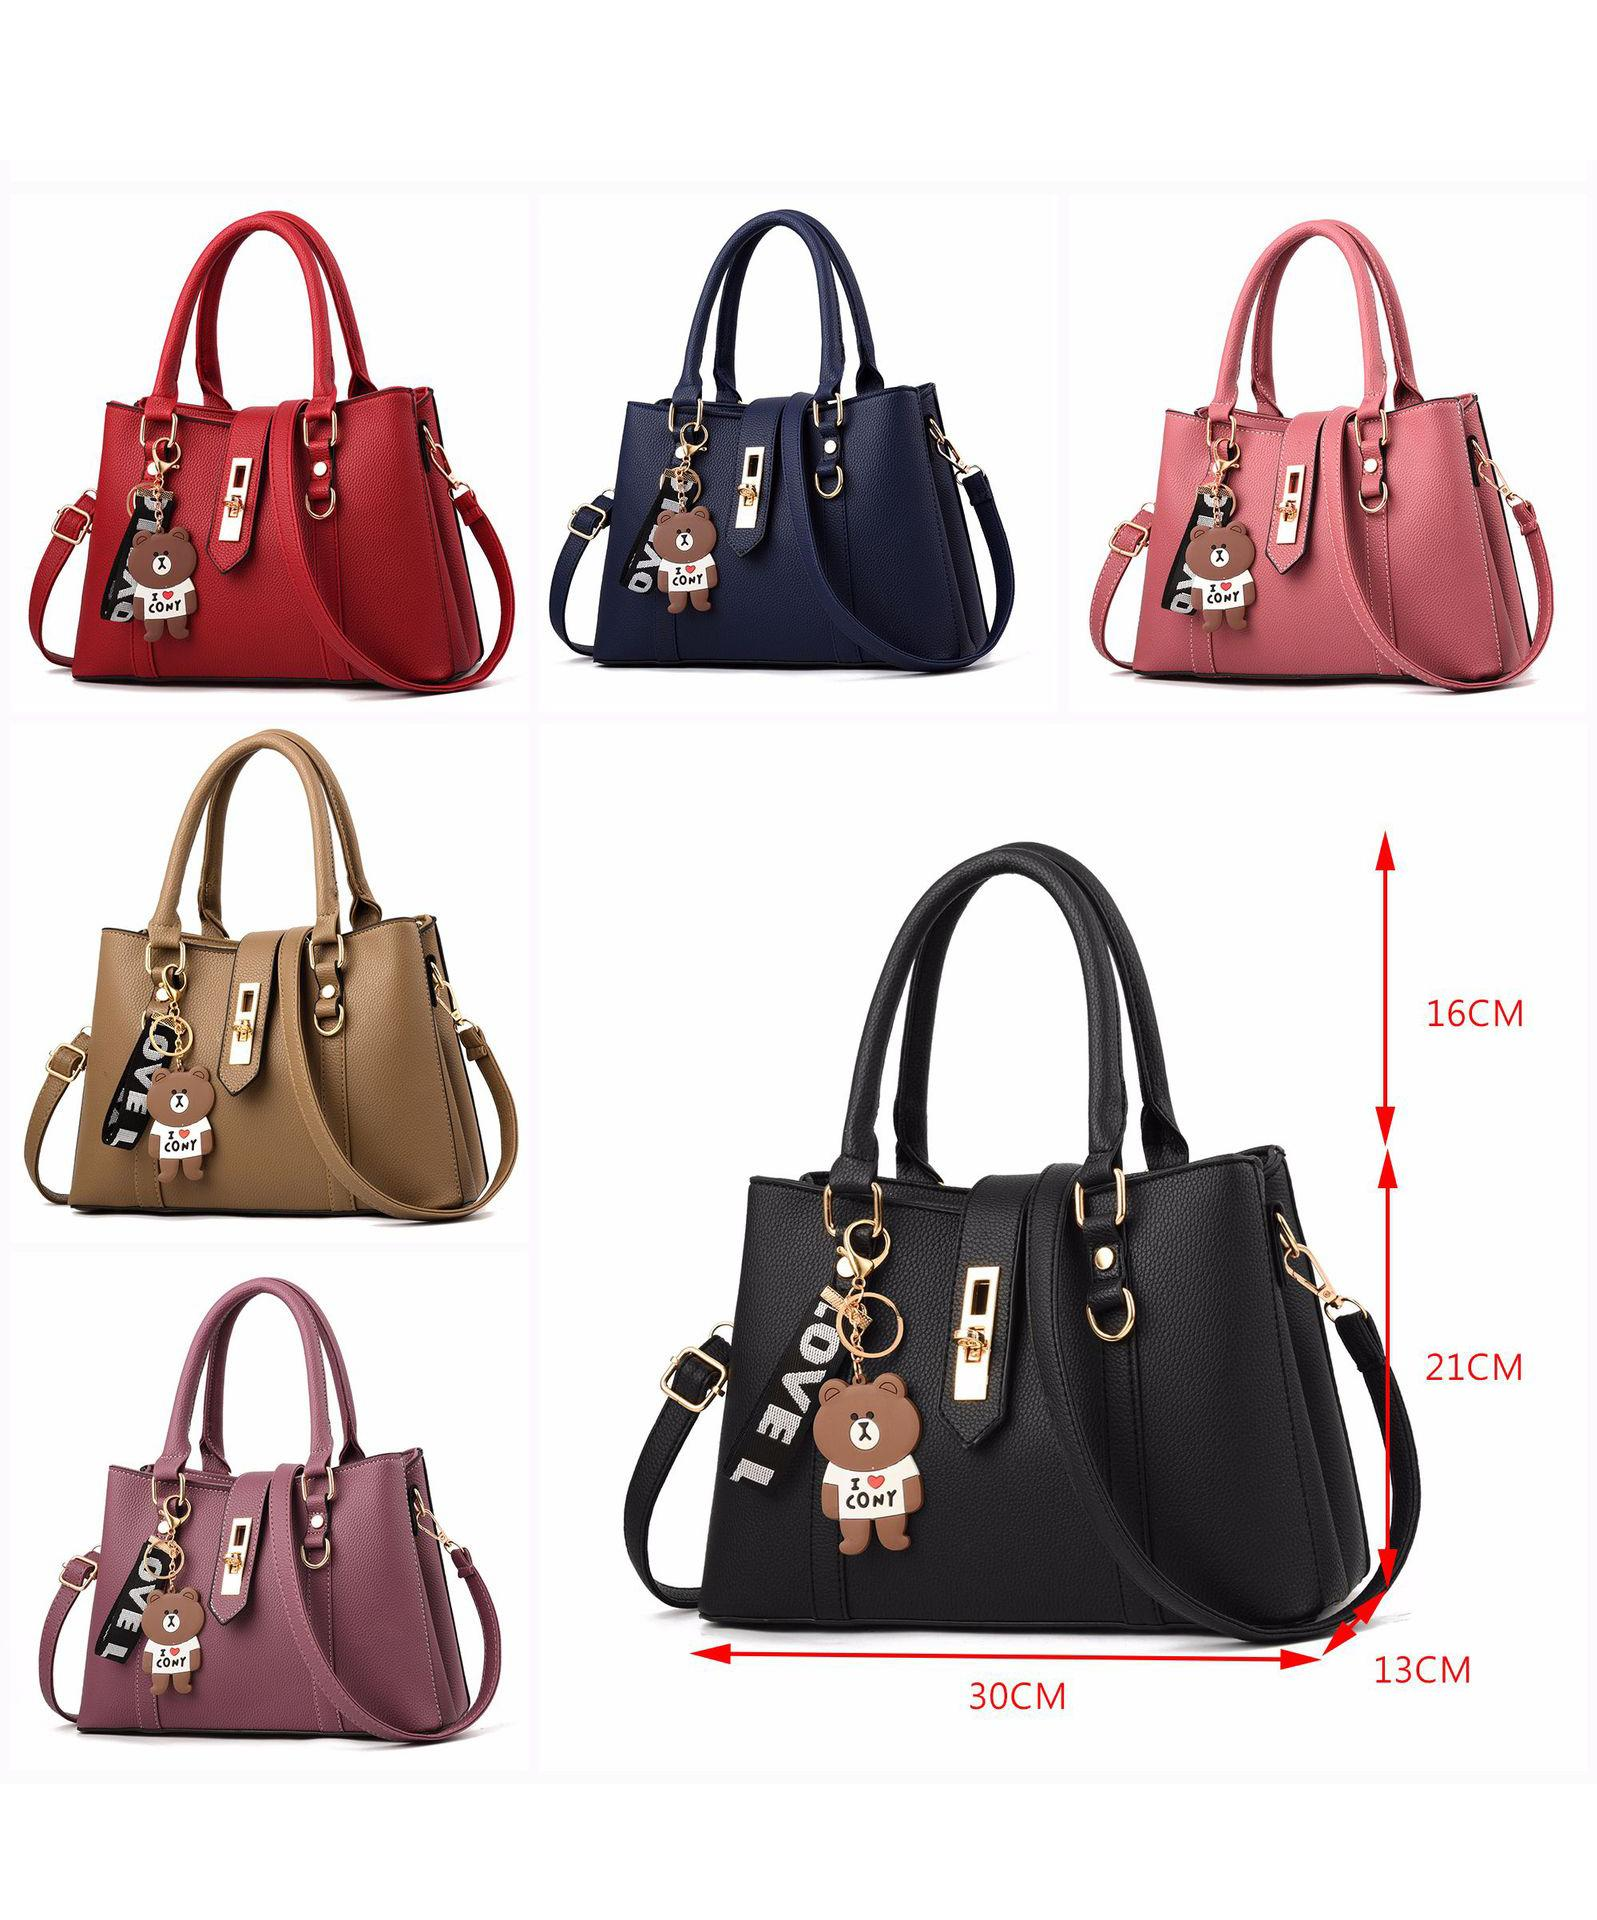 Women Fashion Large Handbags Luxury Designer Lady Totes Bag Leather ... 33521d8bbe372